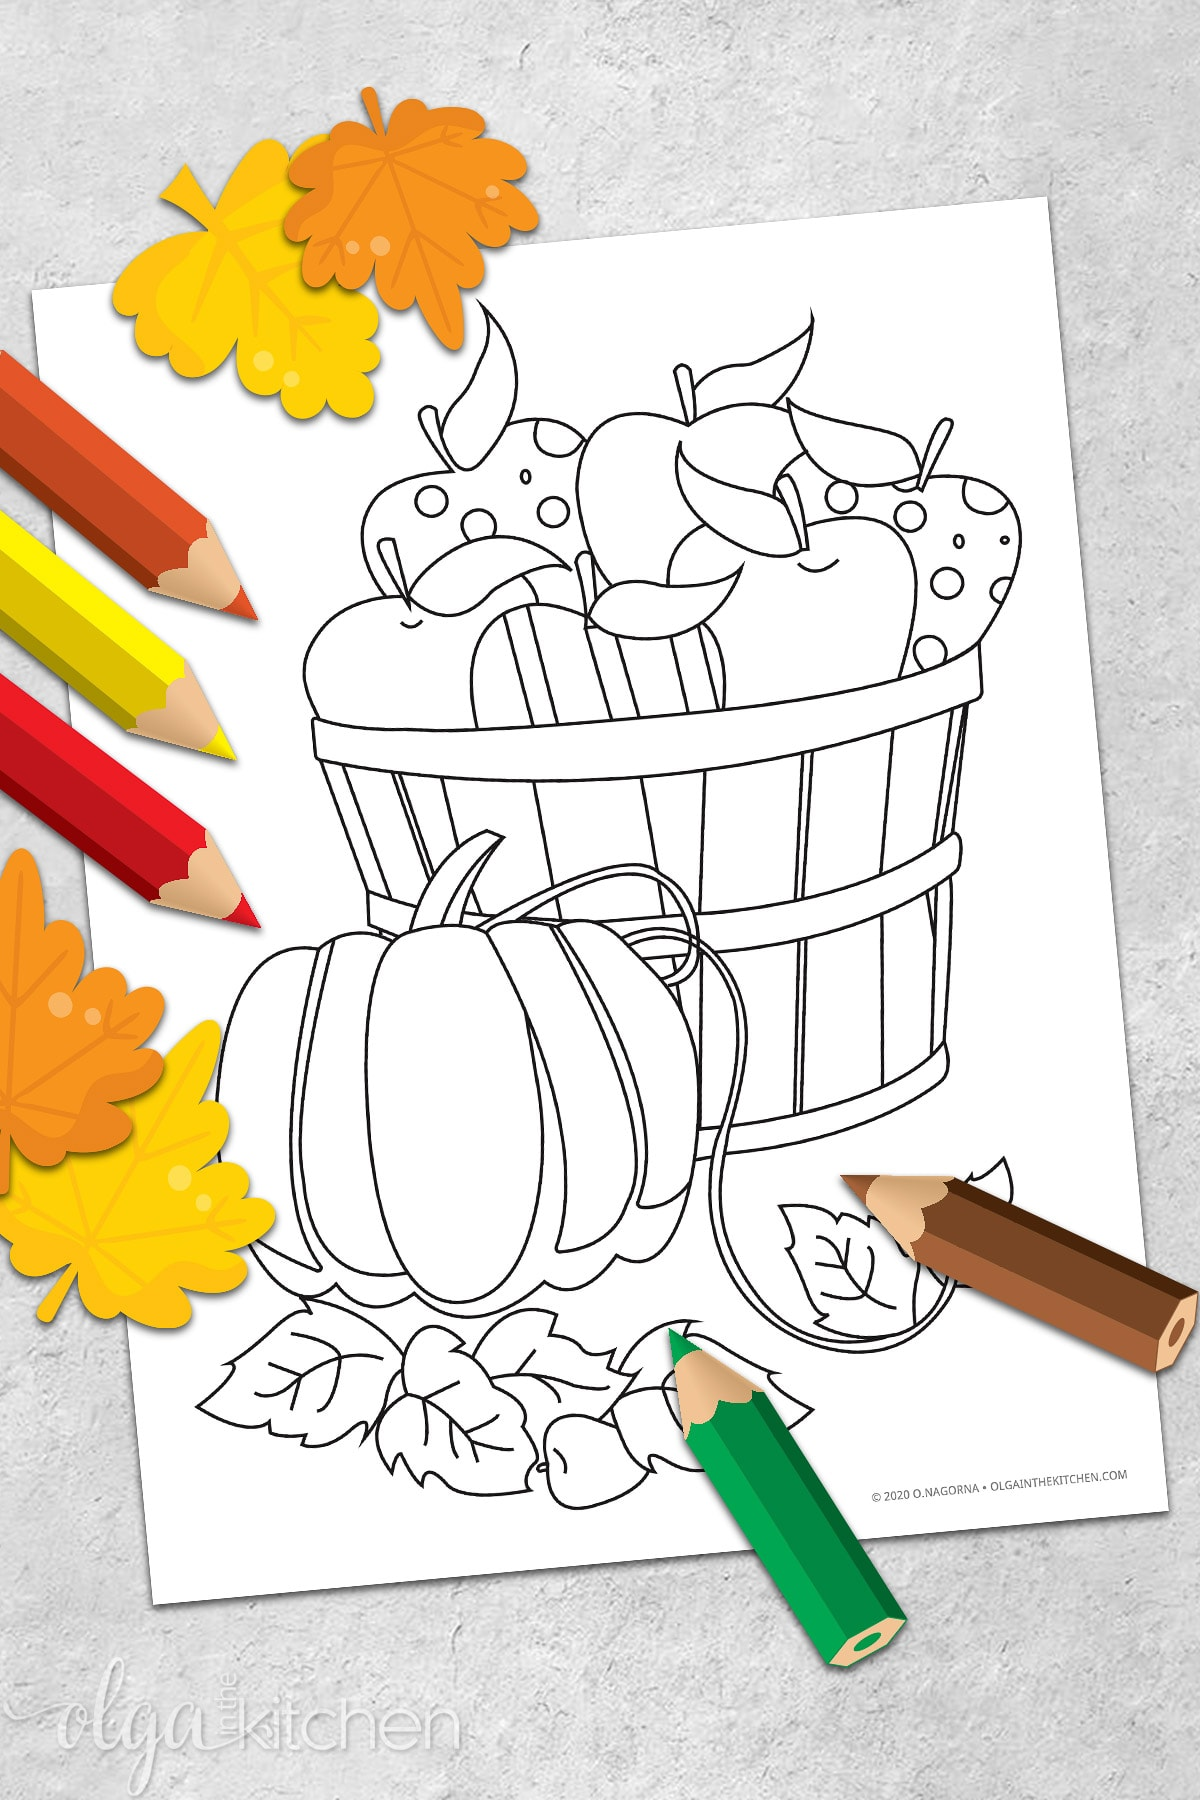 A basket of fruits and pumpkin coloring page for Thanksgiving holiday. #thanksgiving #printables #freebies #olgainthekitchen #homeschool #worksheets #kids